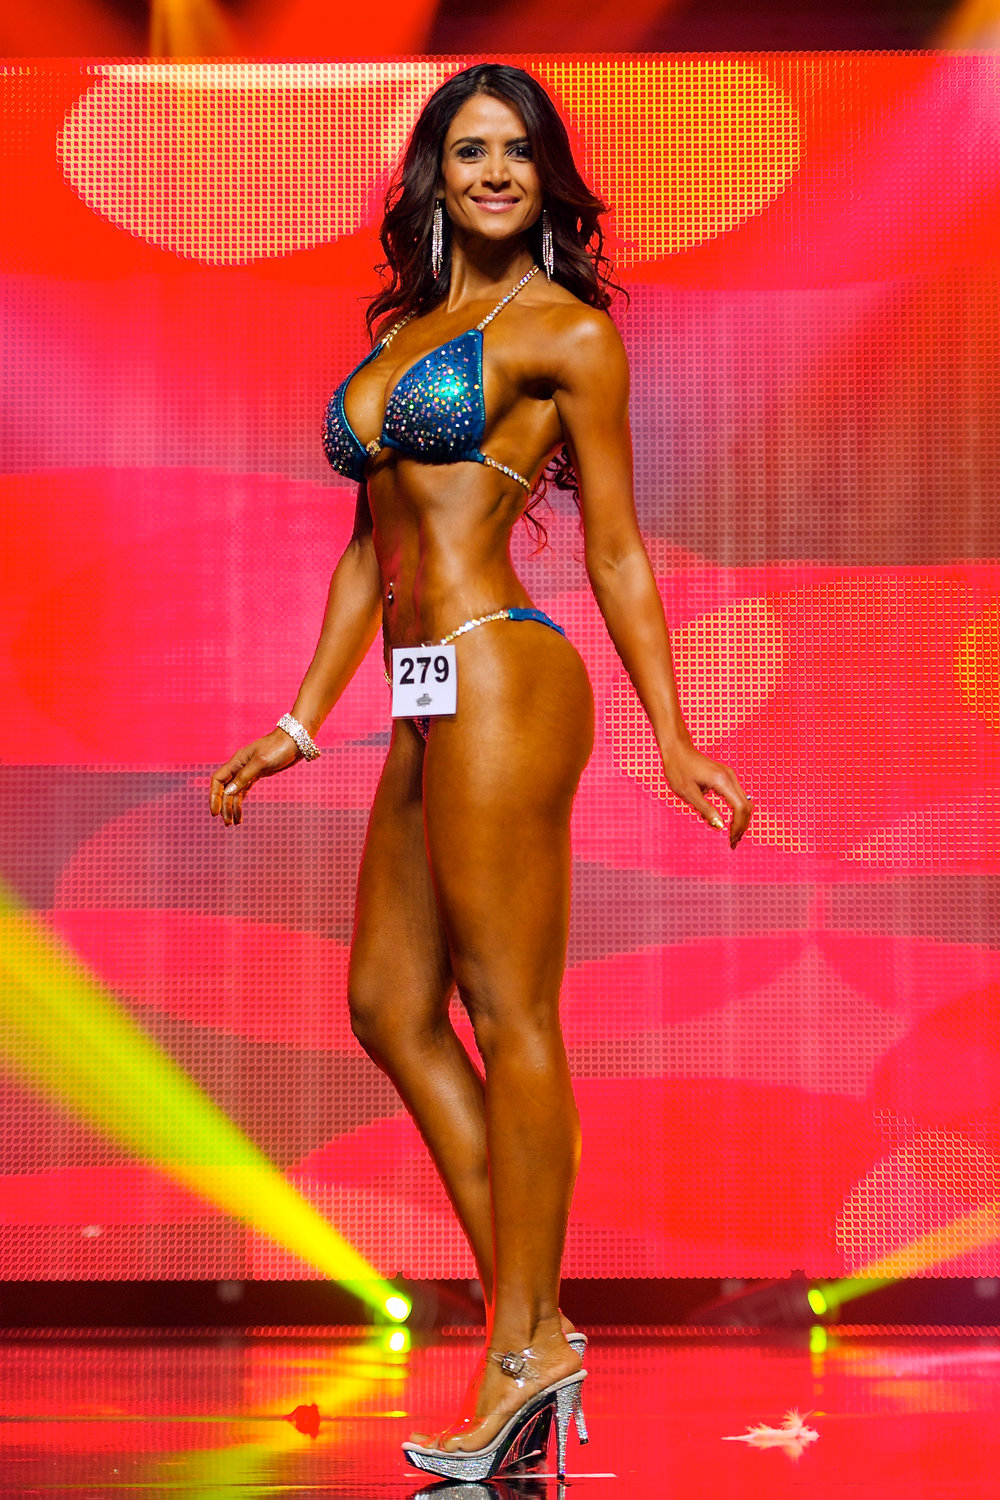 DSC_7603.JPG Peggy Barrios 2016 Fitness America Weekend by Gordon J. Smith.jpg